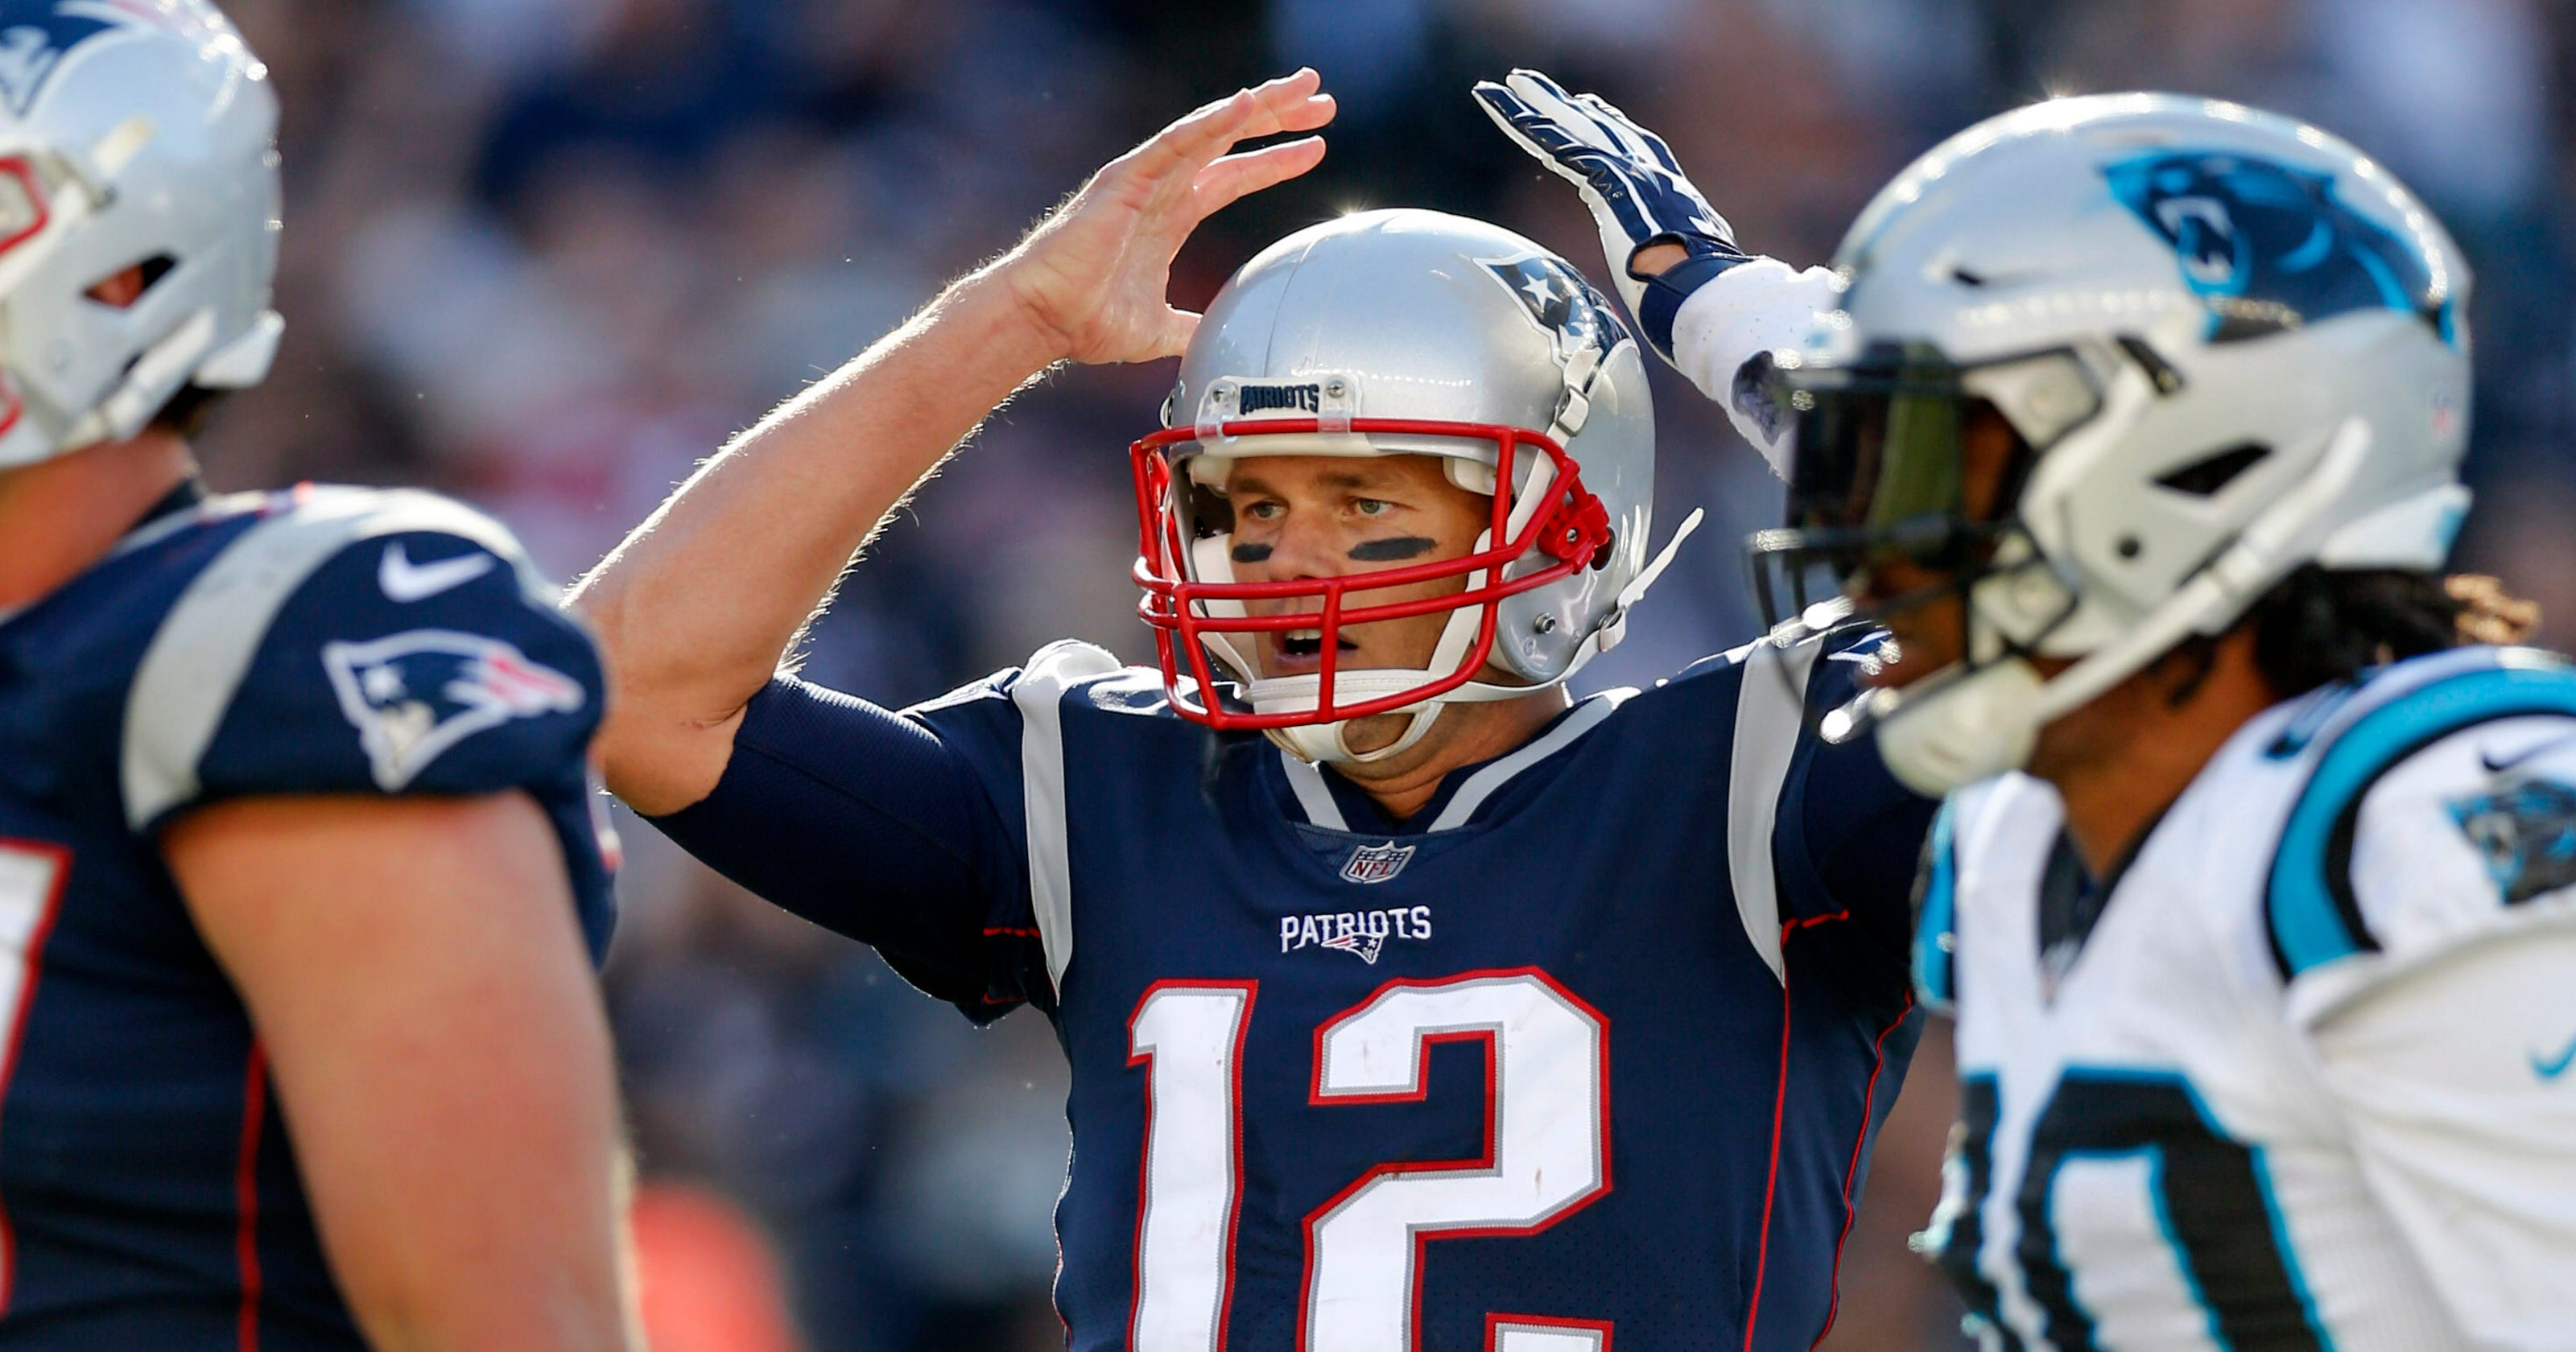 e2a6ac76b Patriots in shambles  Even Tom Brady couldn t salvage win vs. Panthers